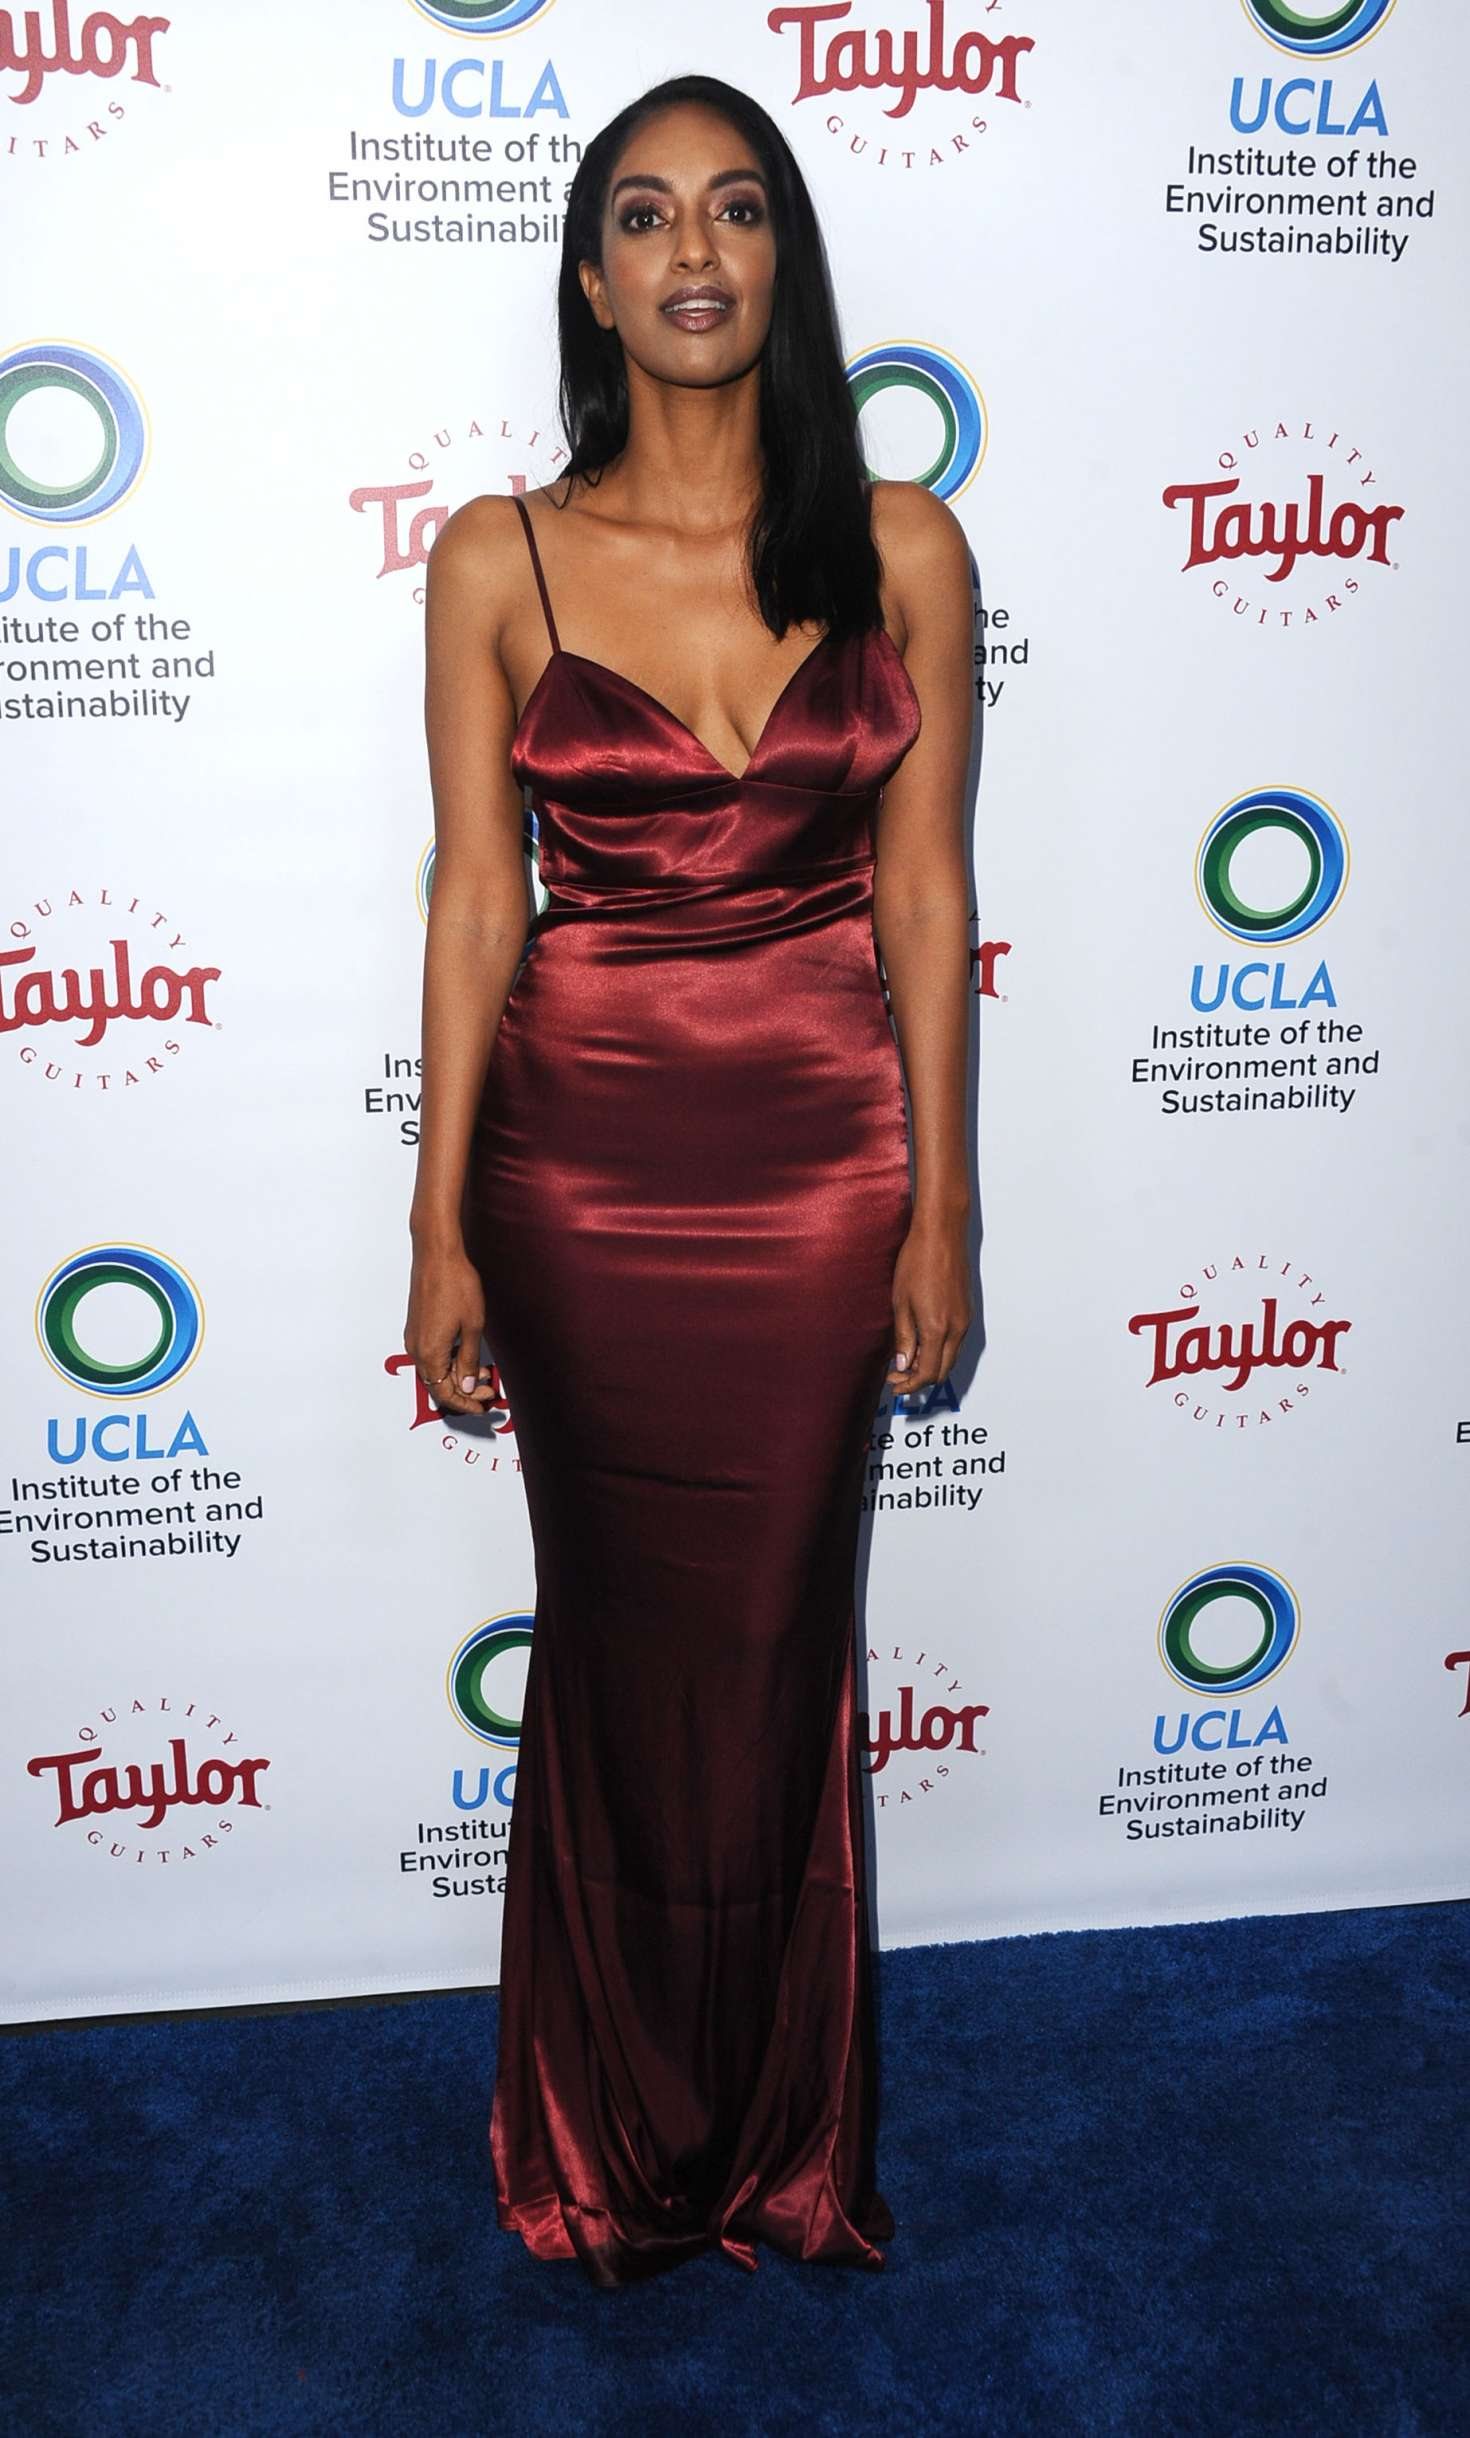 Azie Tesfai 2018 : Azie Tesfai: 2018 UCLAs Institute of the Environment and Sustainability Gala -09